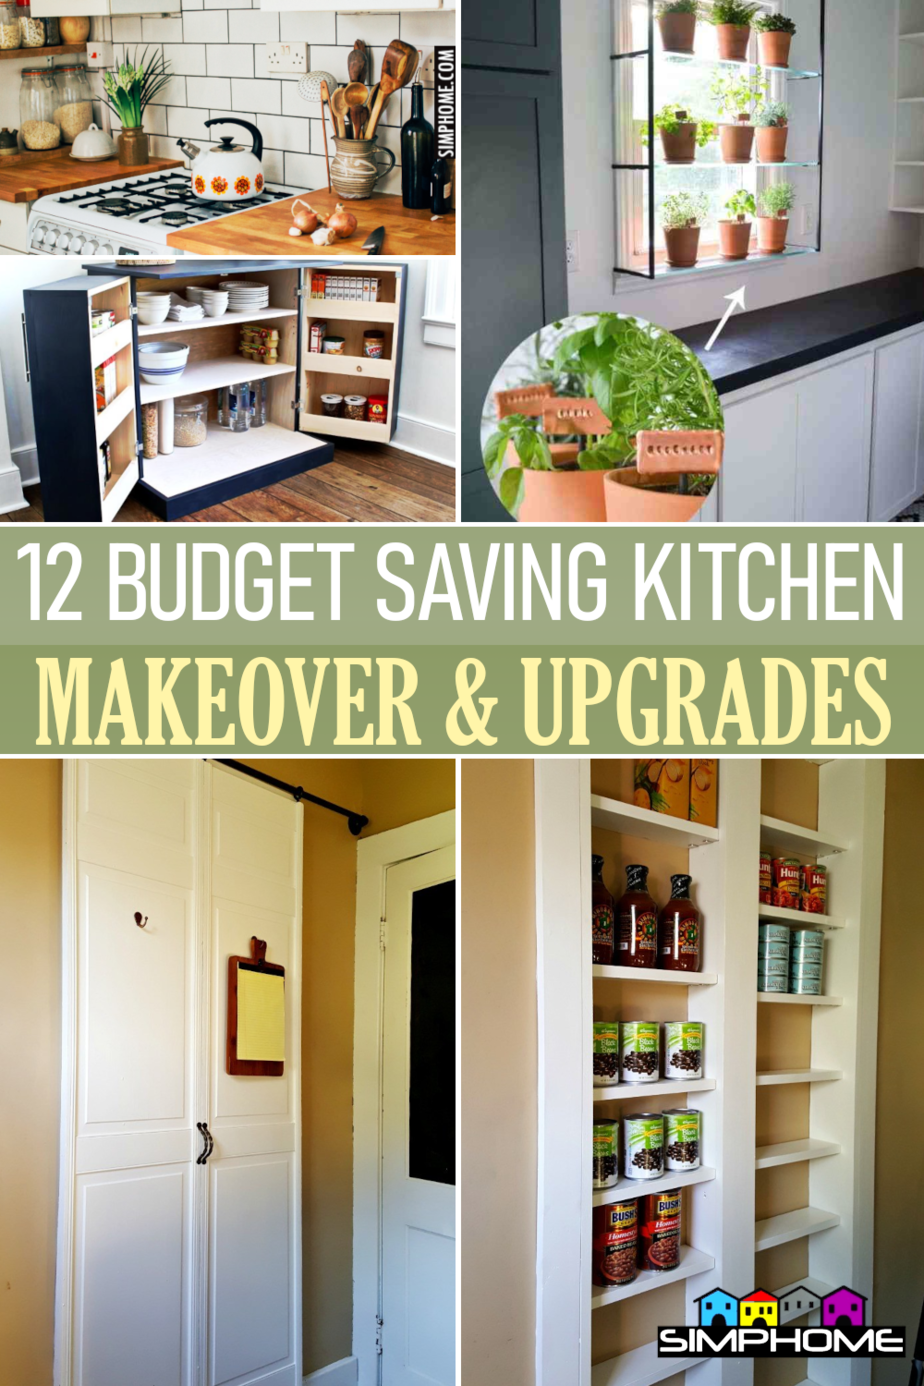 12 Budget Saving Kitchen Makeover Ideas via Simphome.comFeatured